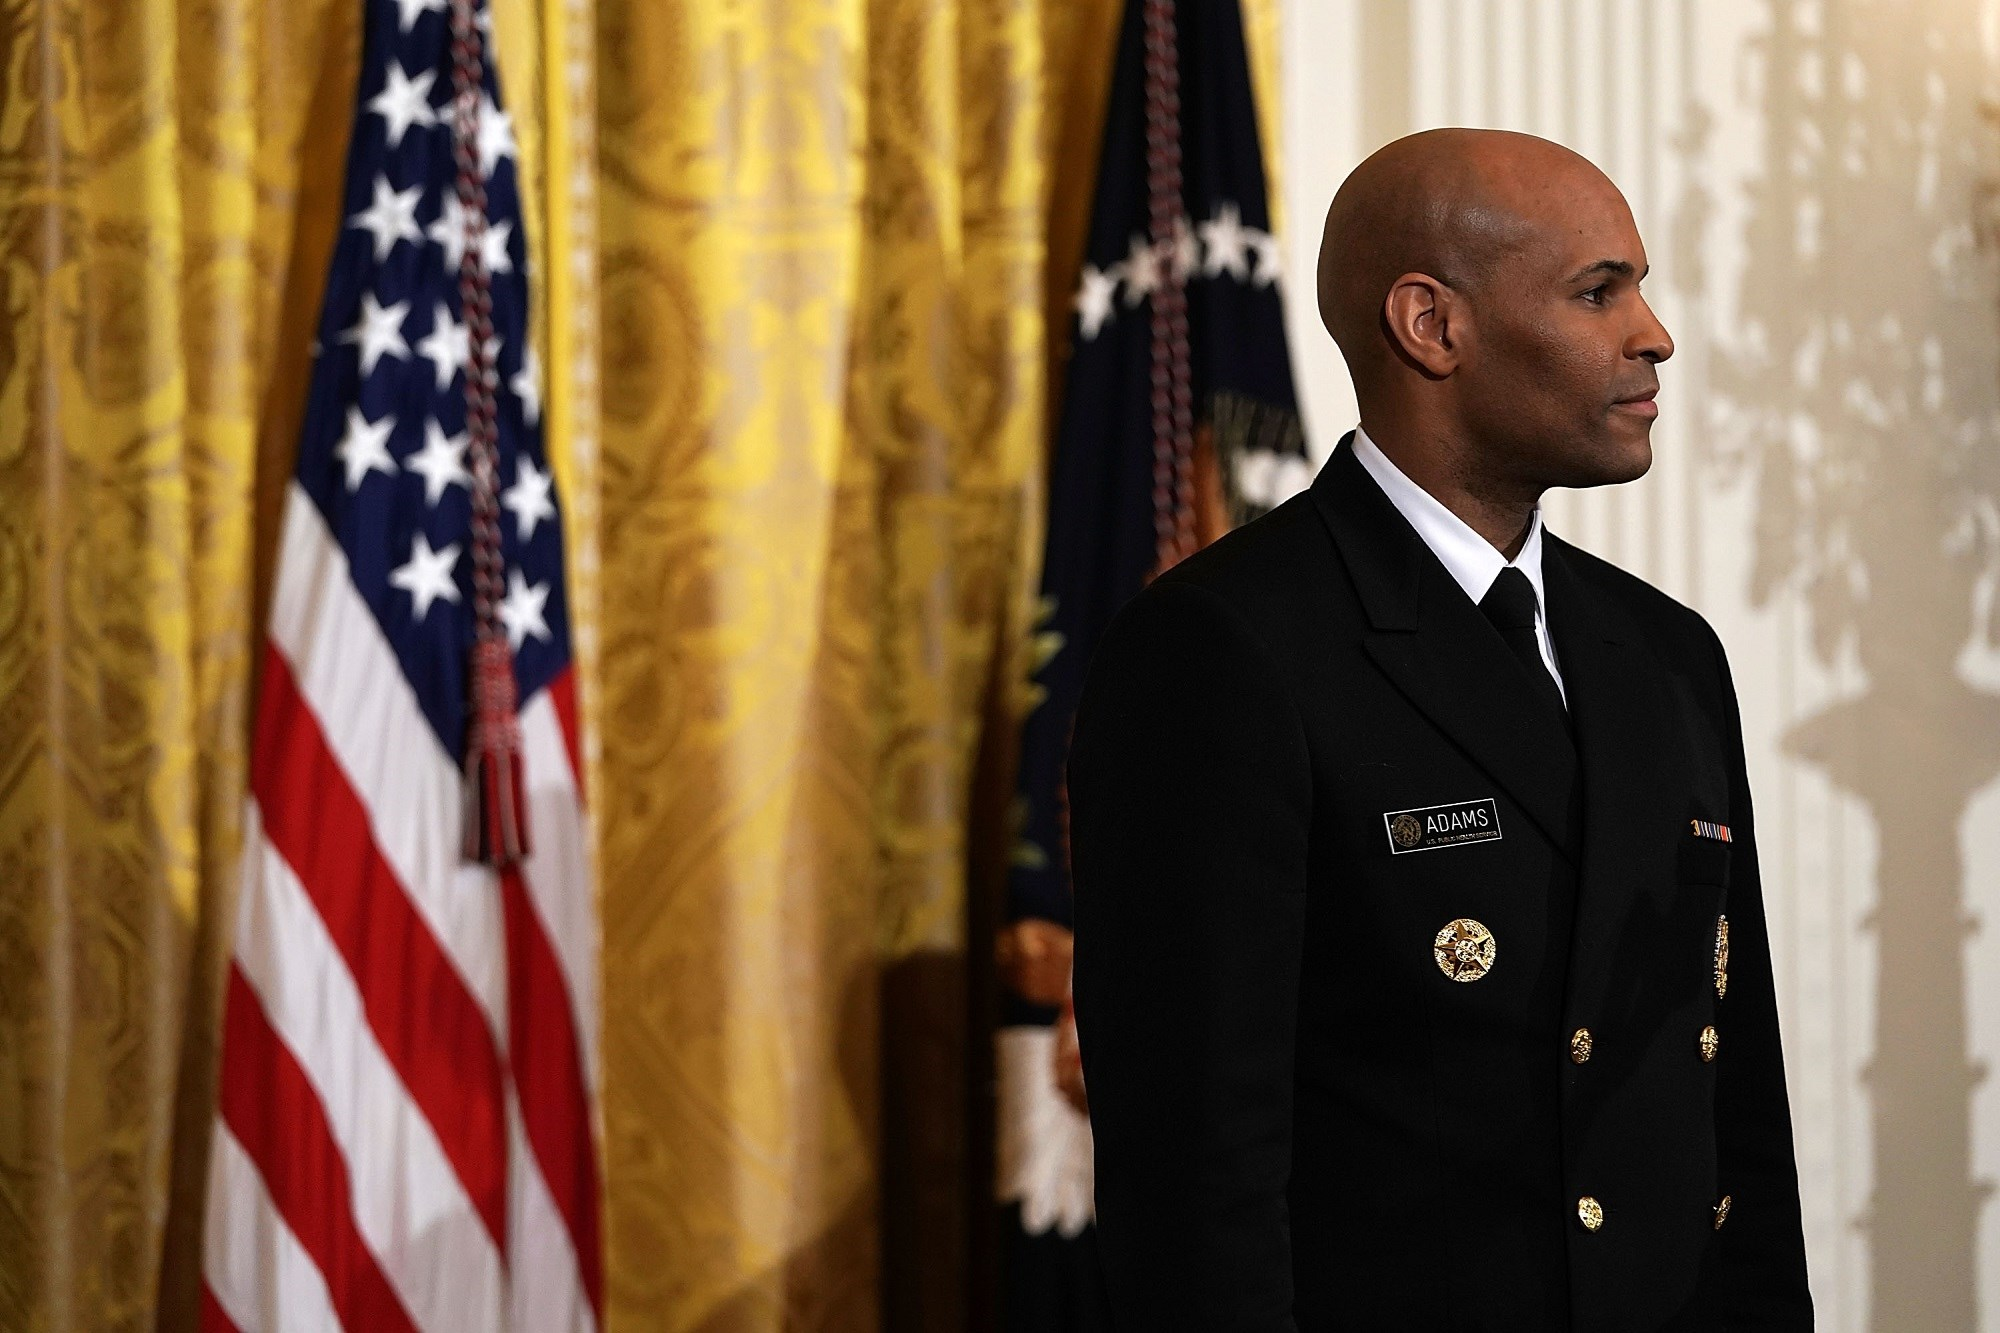 U.S. Surgeon General Urges More Americans to Carry Naloxone